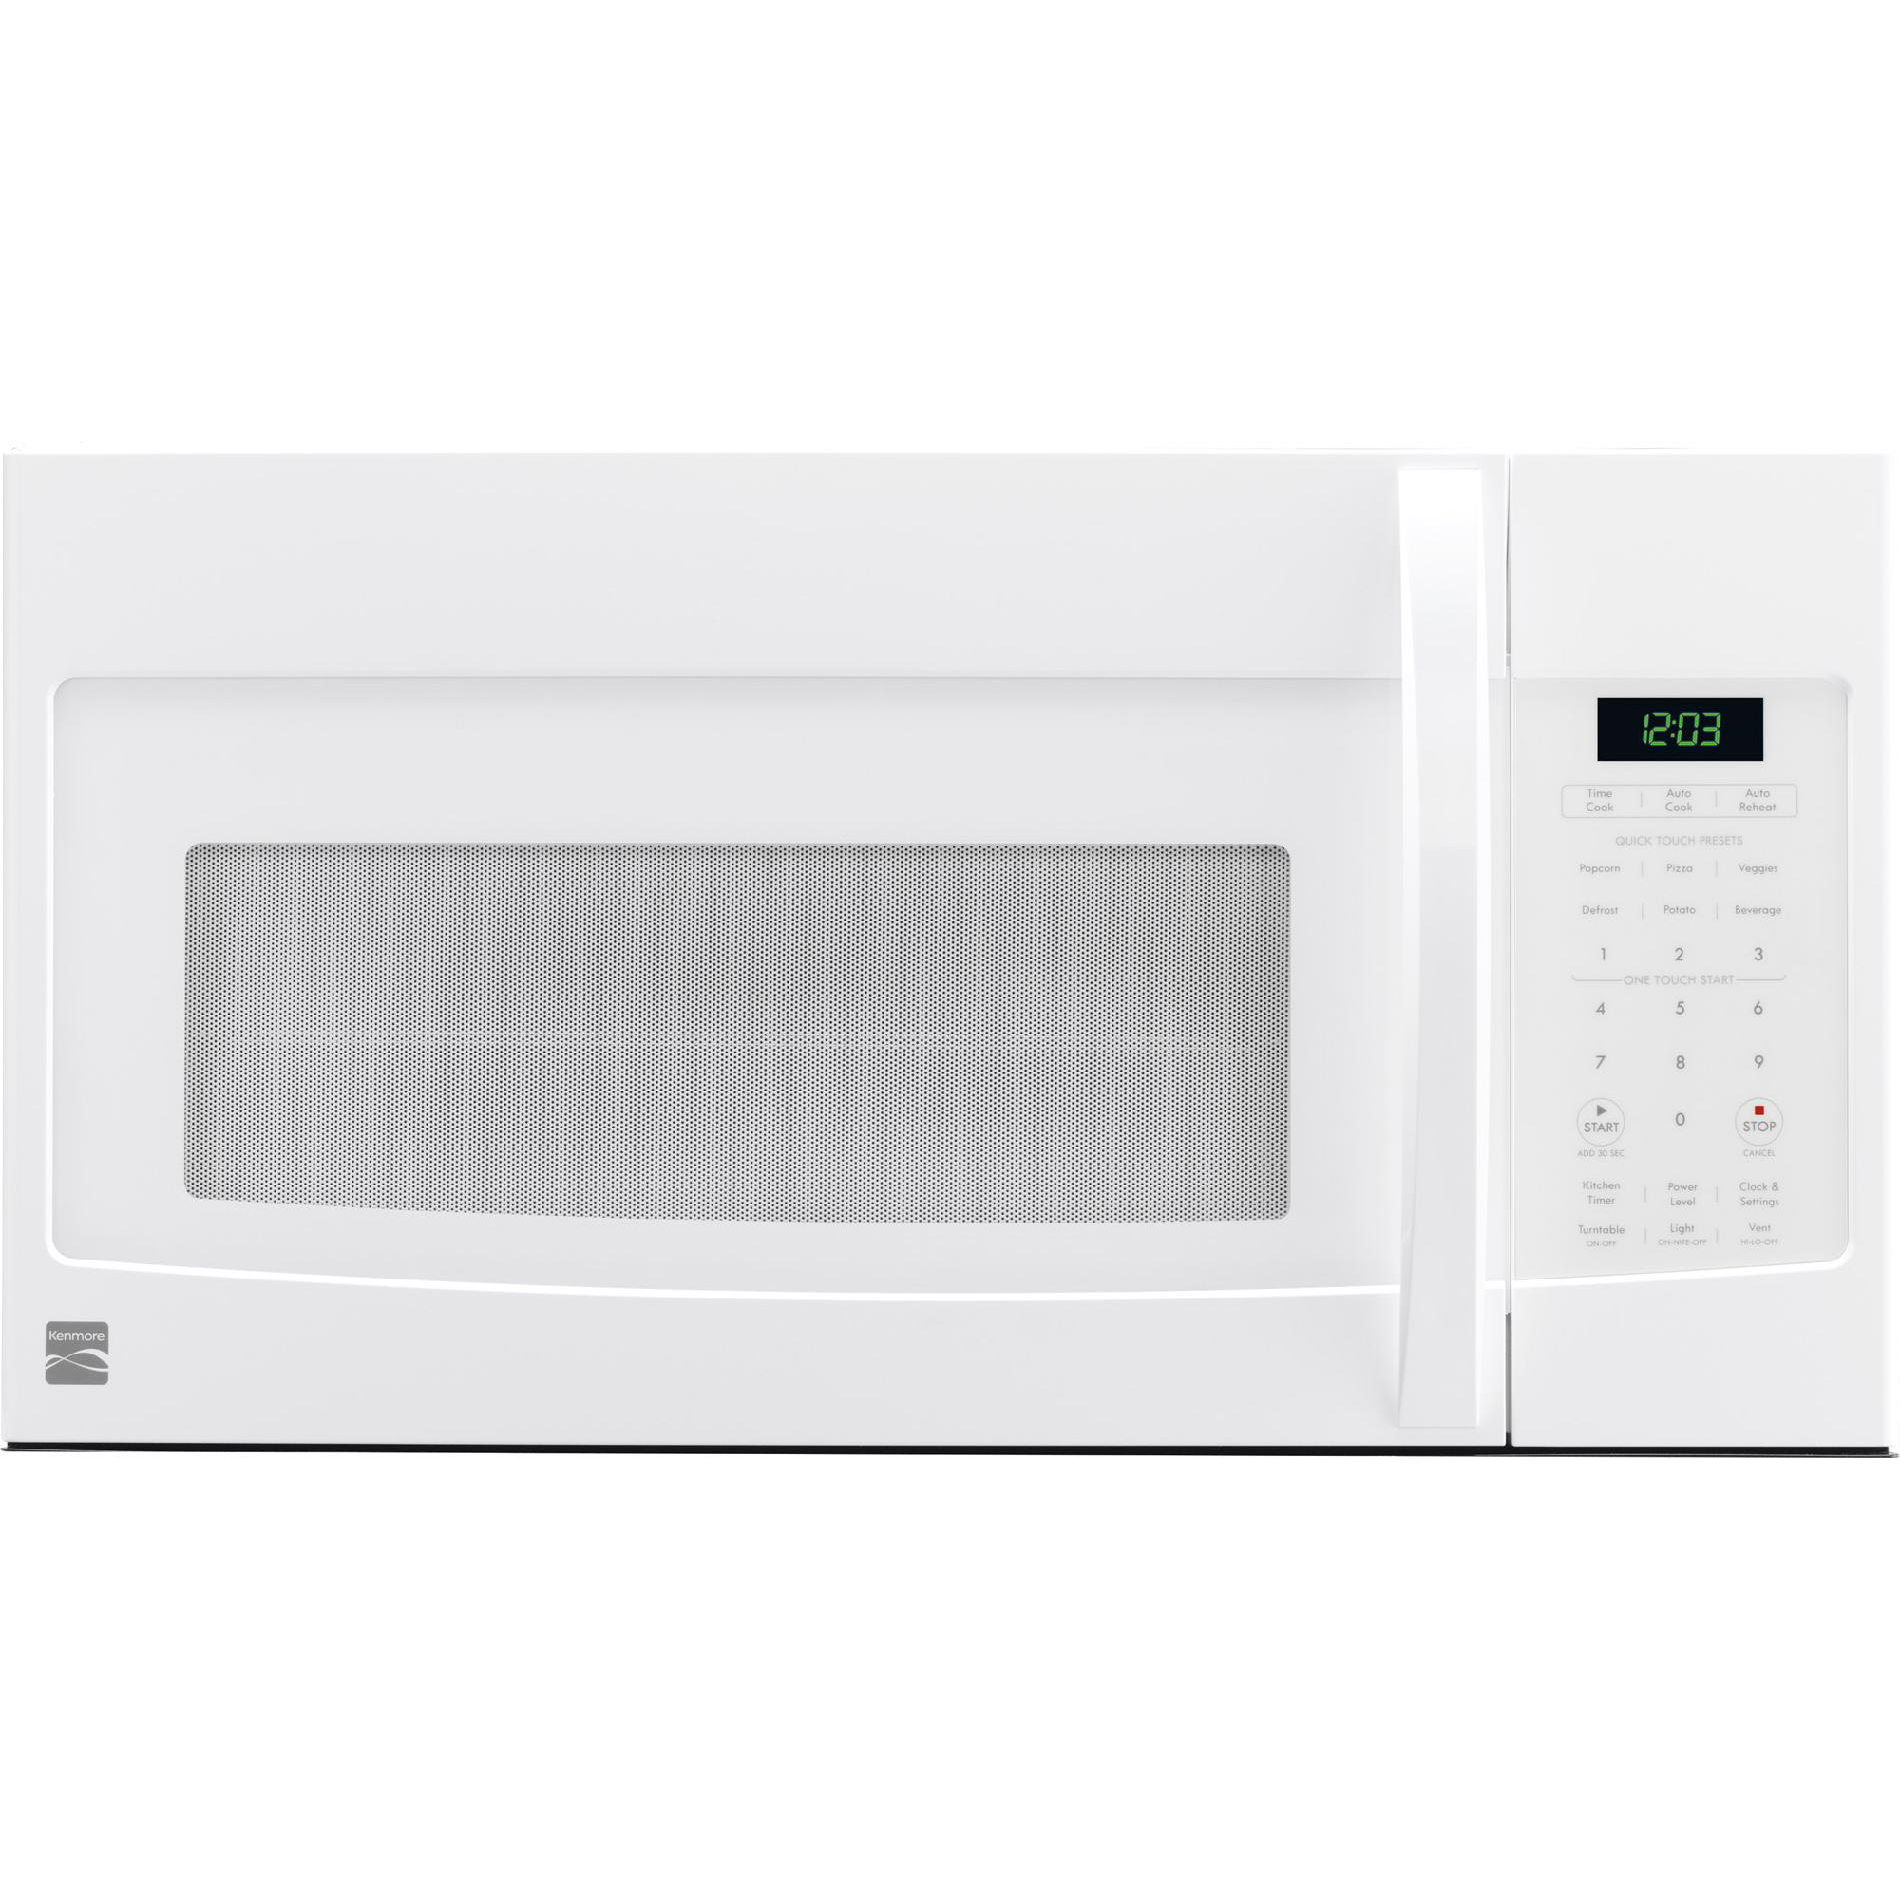 kenmore 80322 1 6 cu ft over the range microwave white